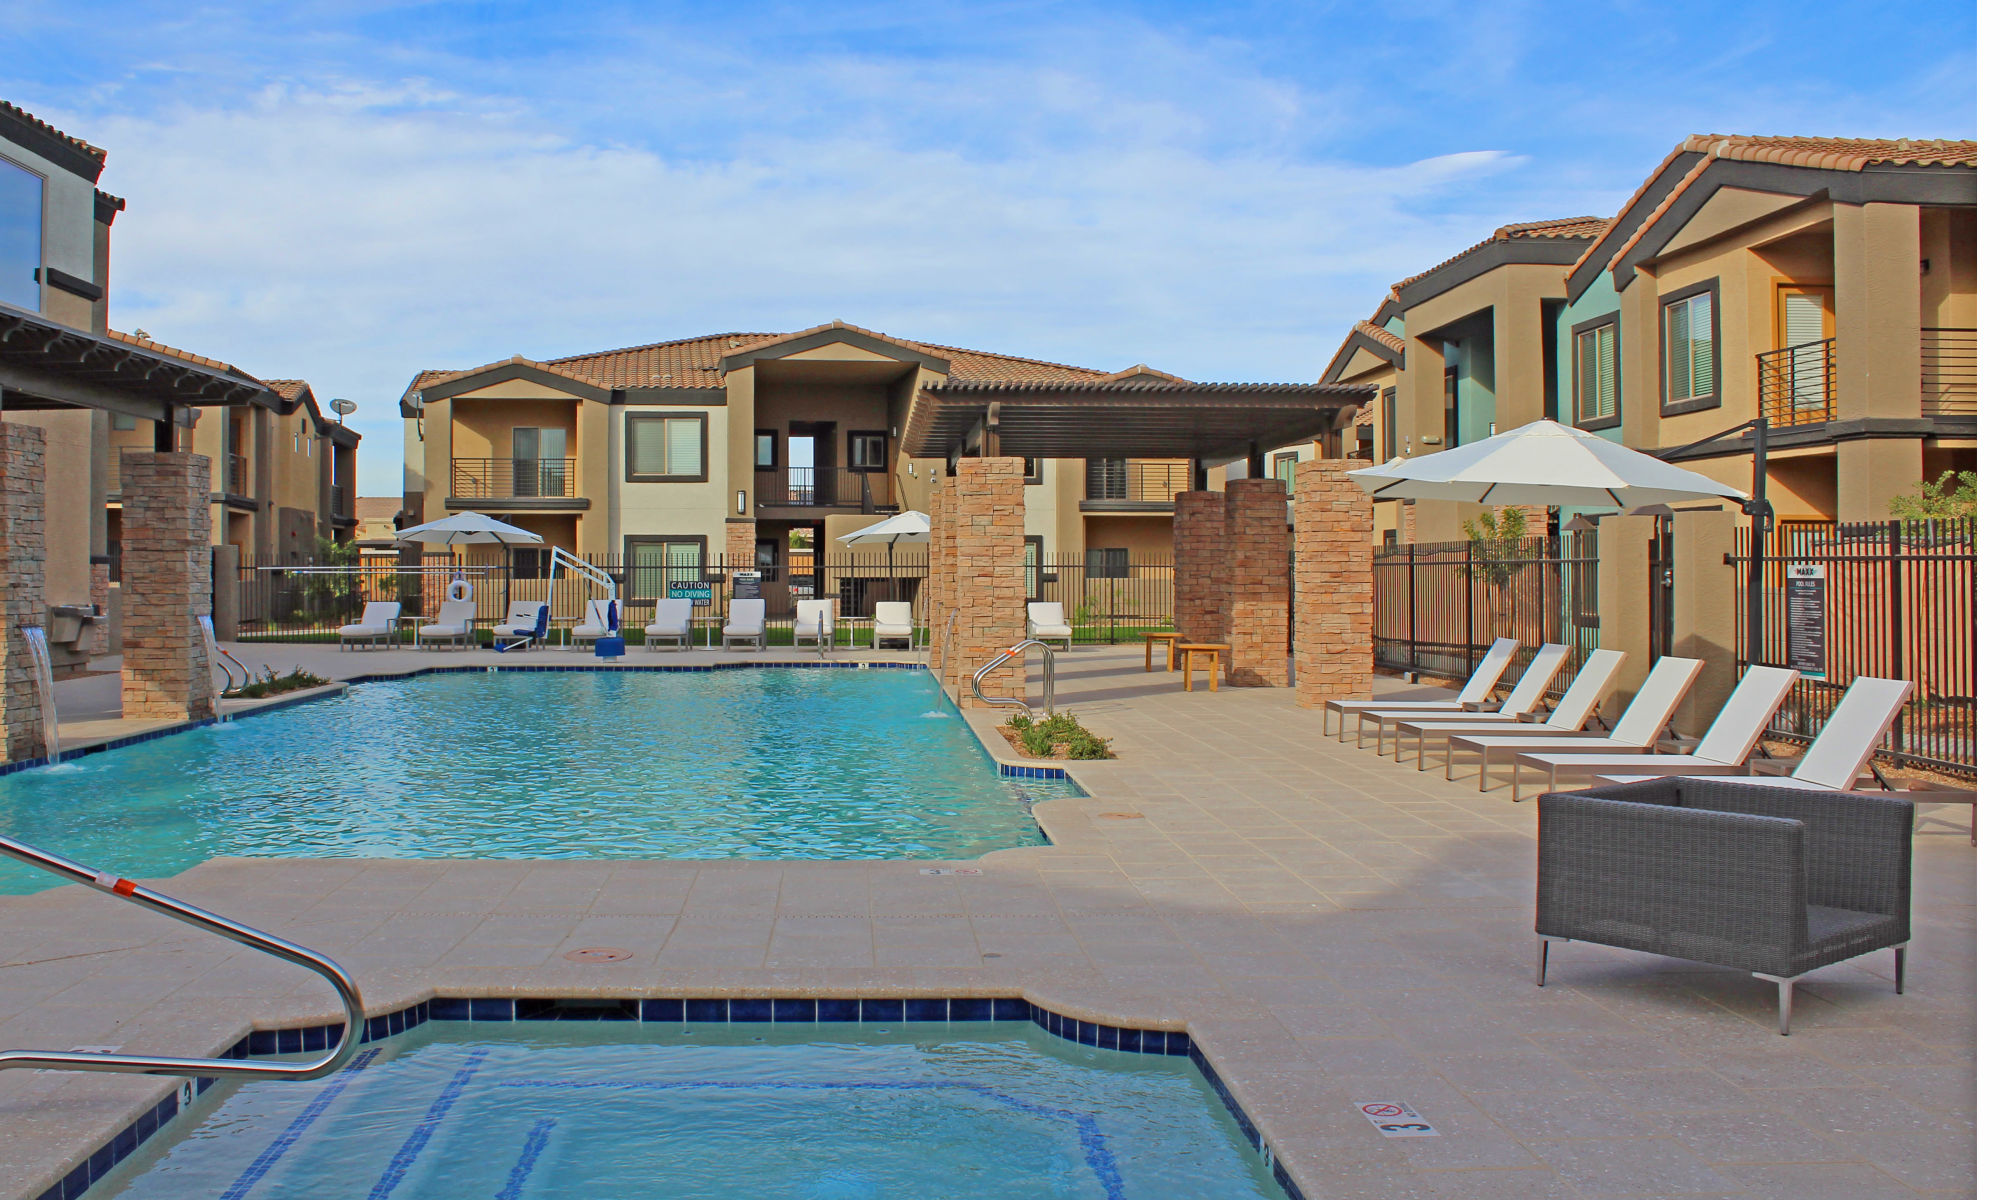 Apartments at The Maxx 159 in Goodyear, Arizona